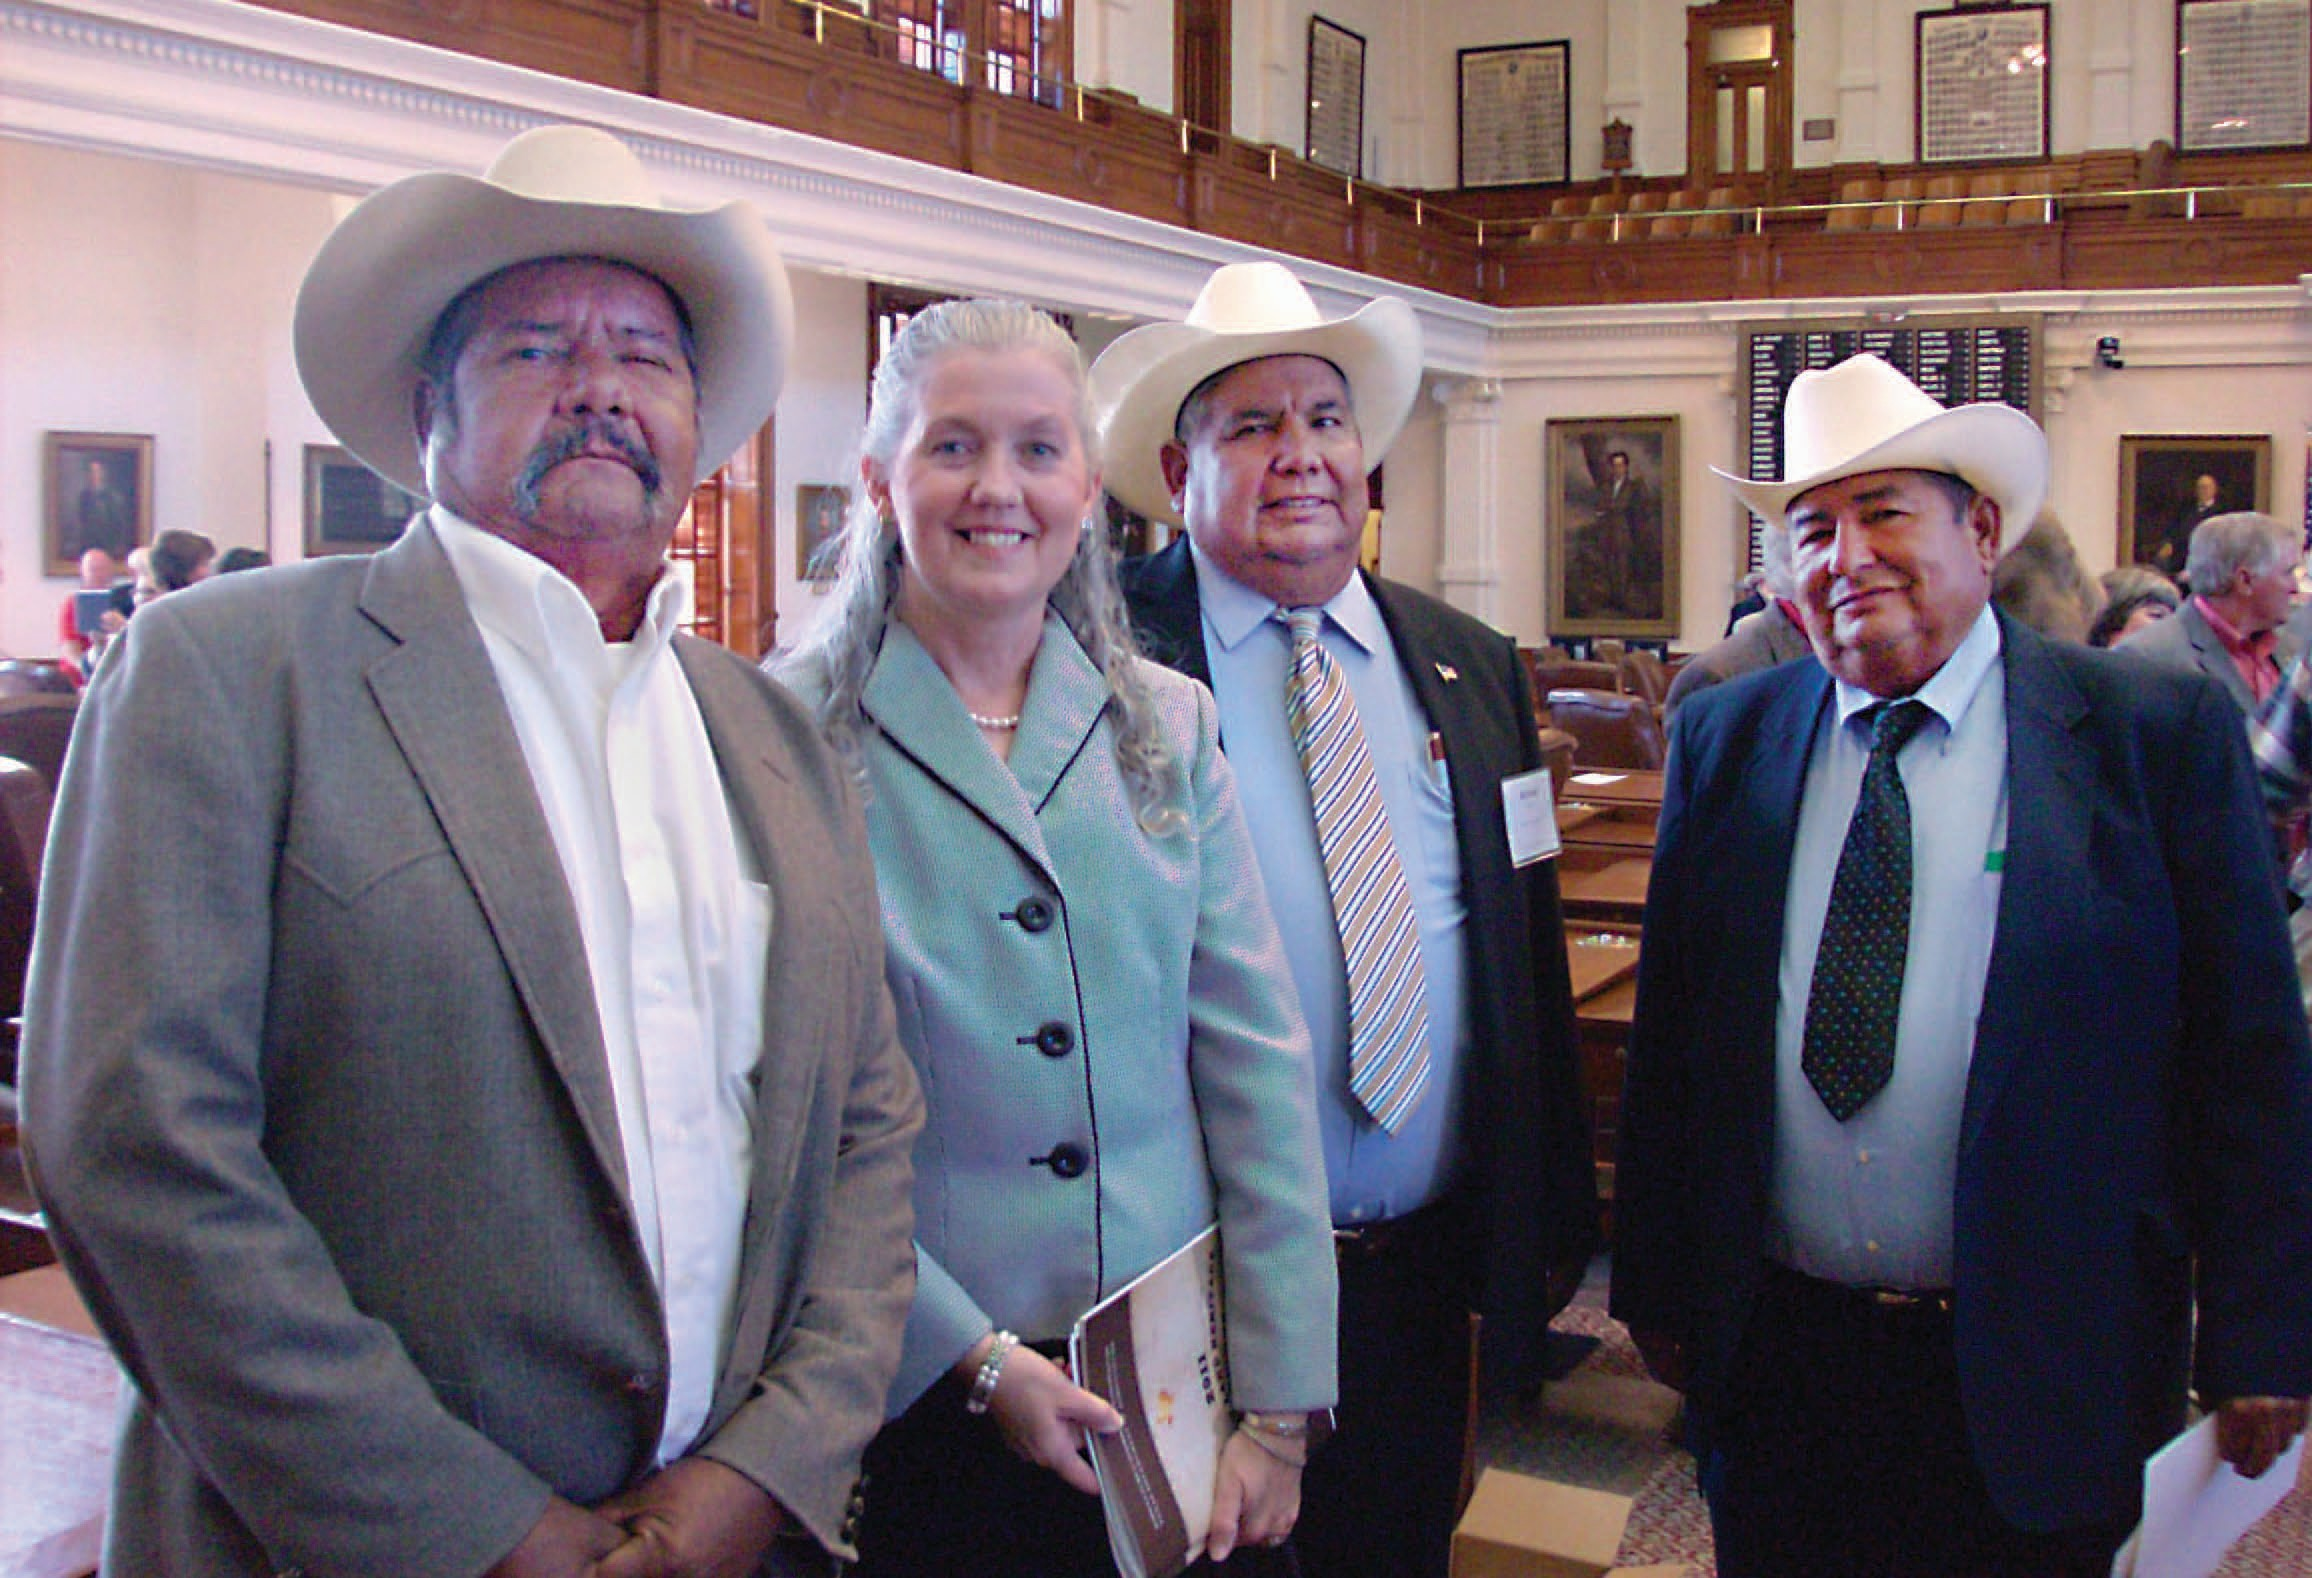 The picture, shortly after the ceremony on the capital floor, has from left to right, David Reyes, County Judge Diana Bautista, Richard Reyes, and Albert Reyes.